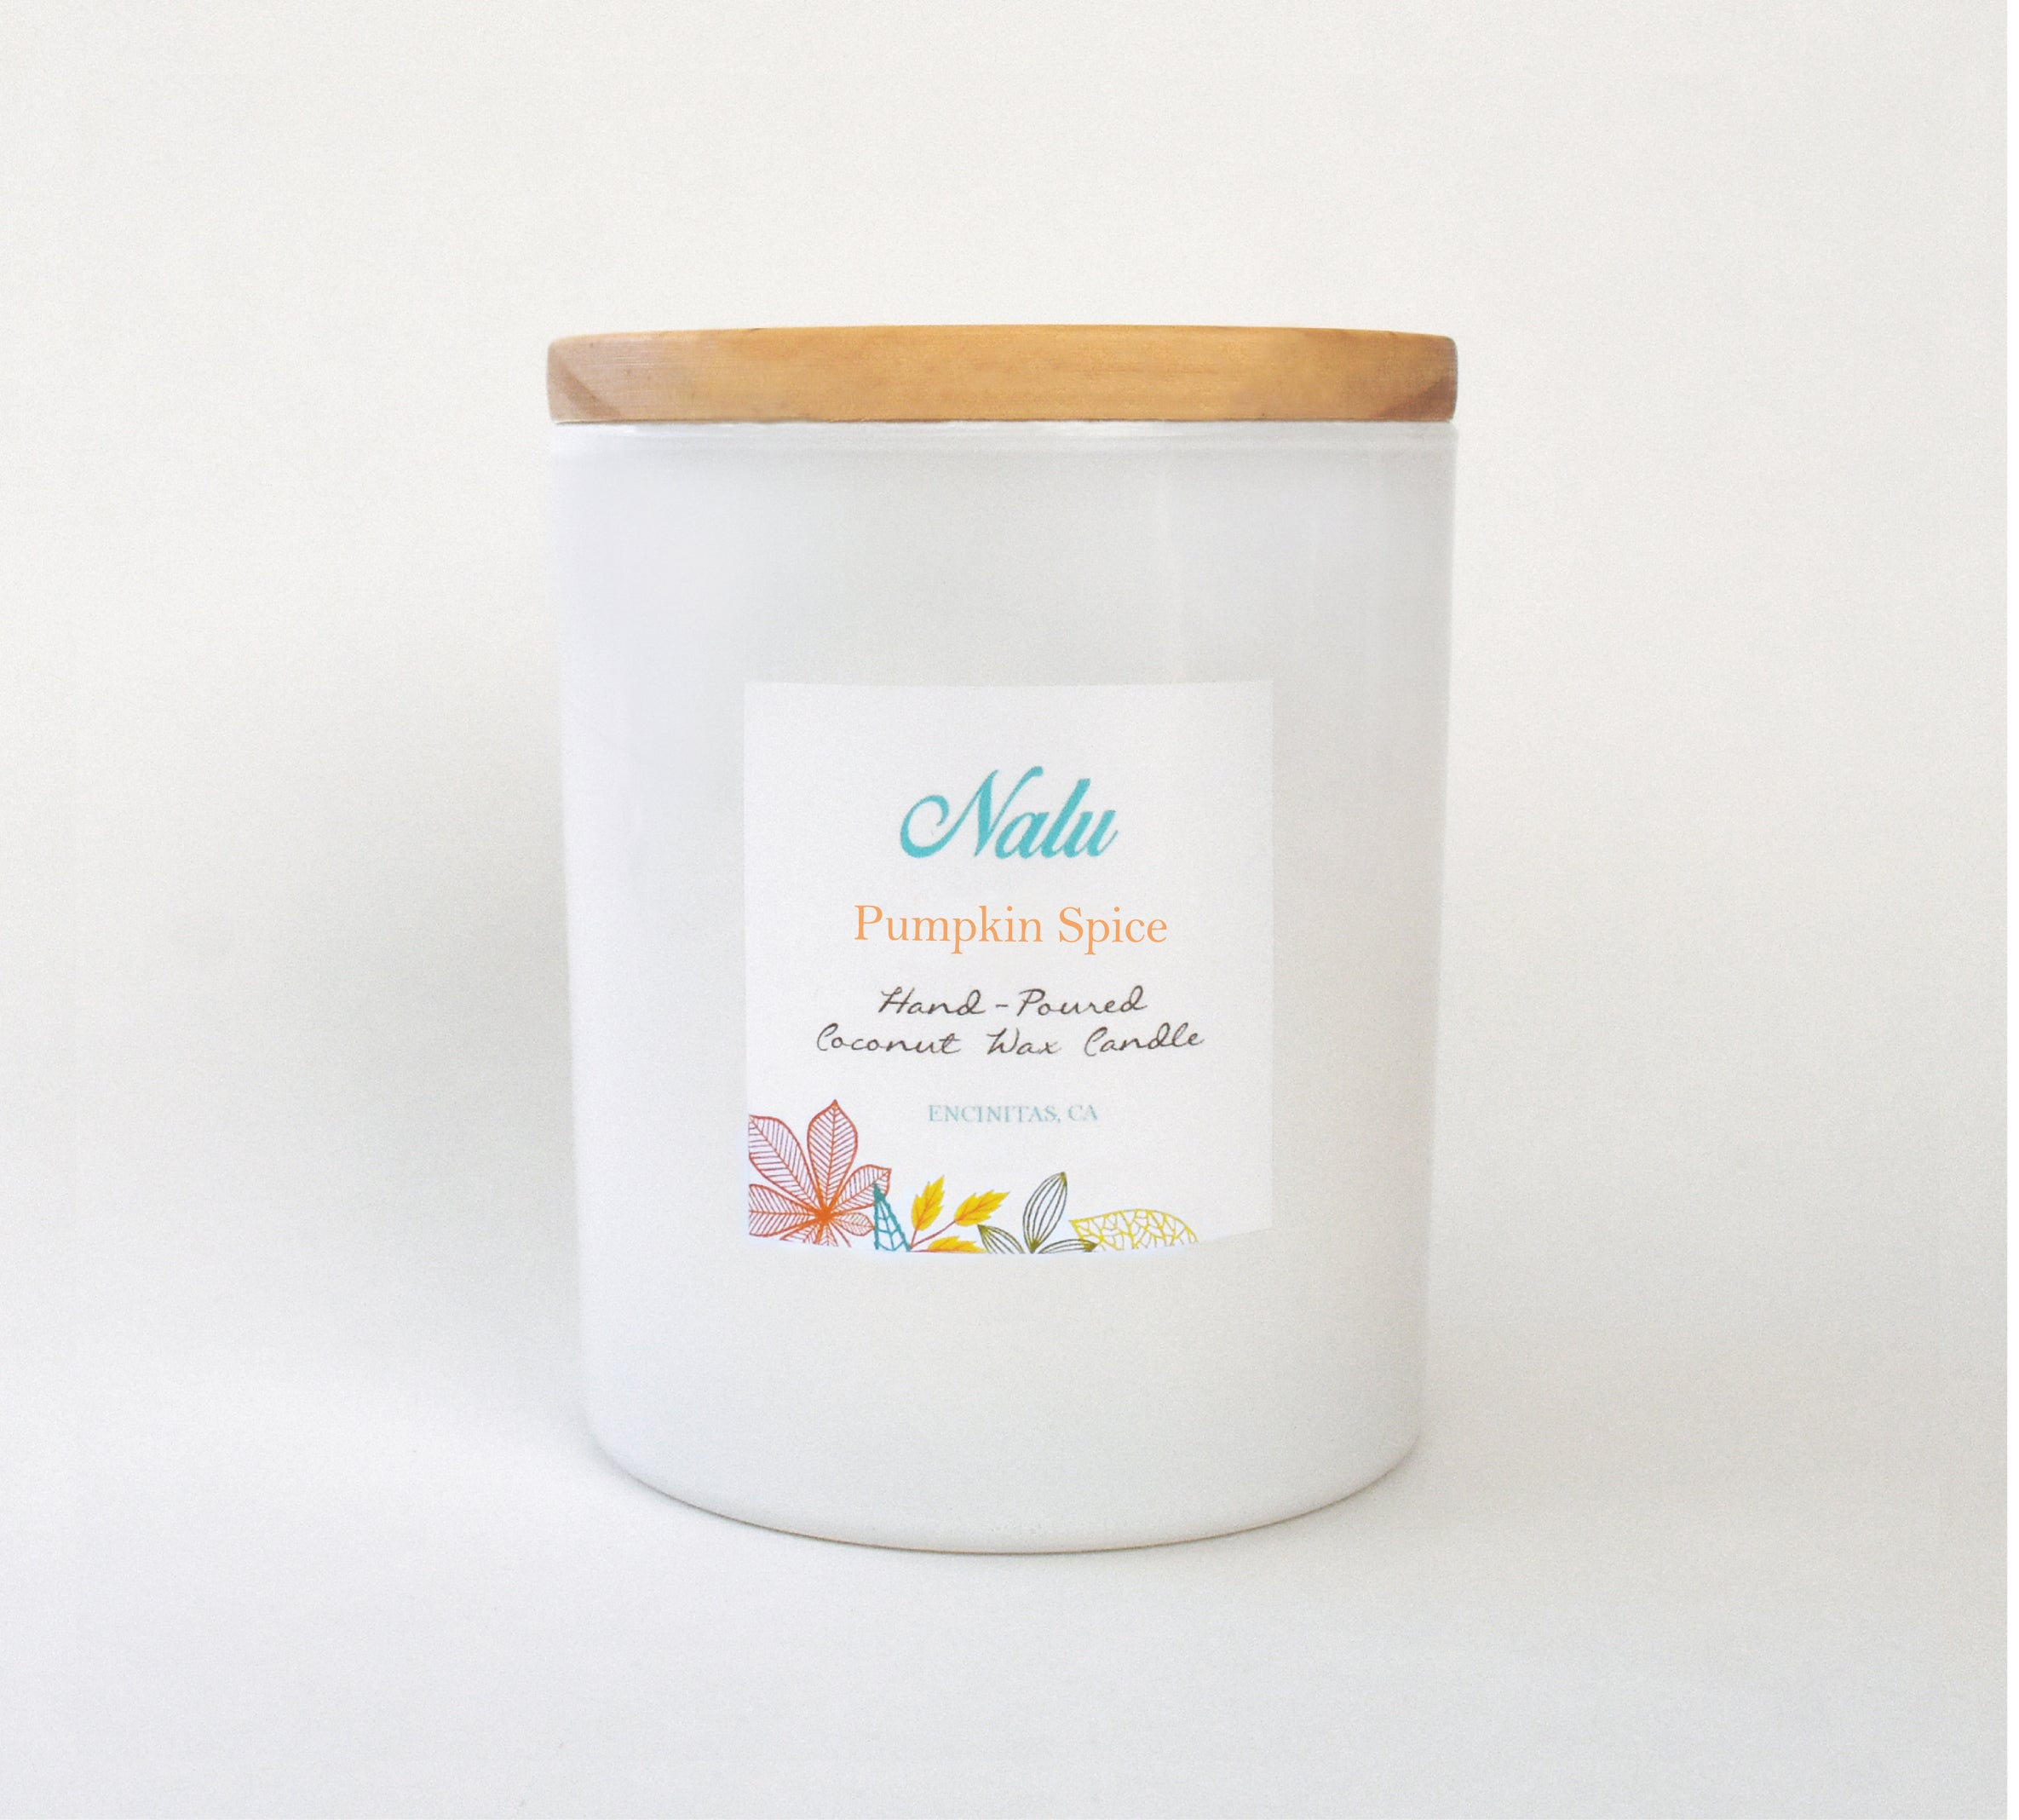 Pumpkin Spice 10 oz. Candle